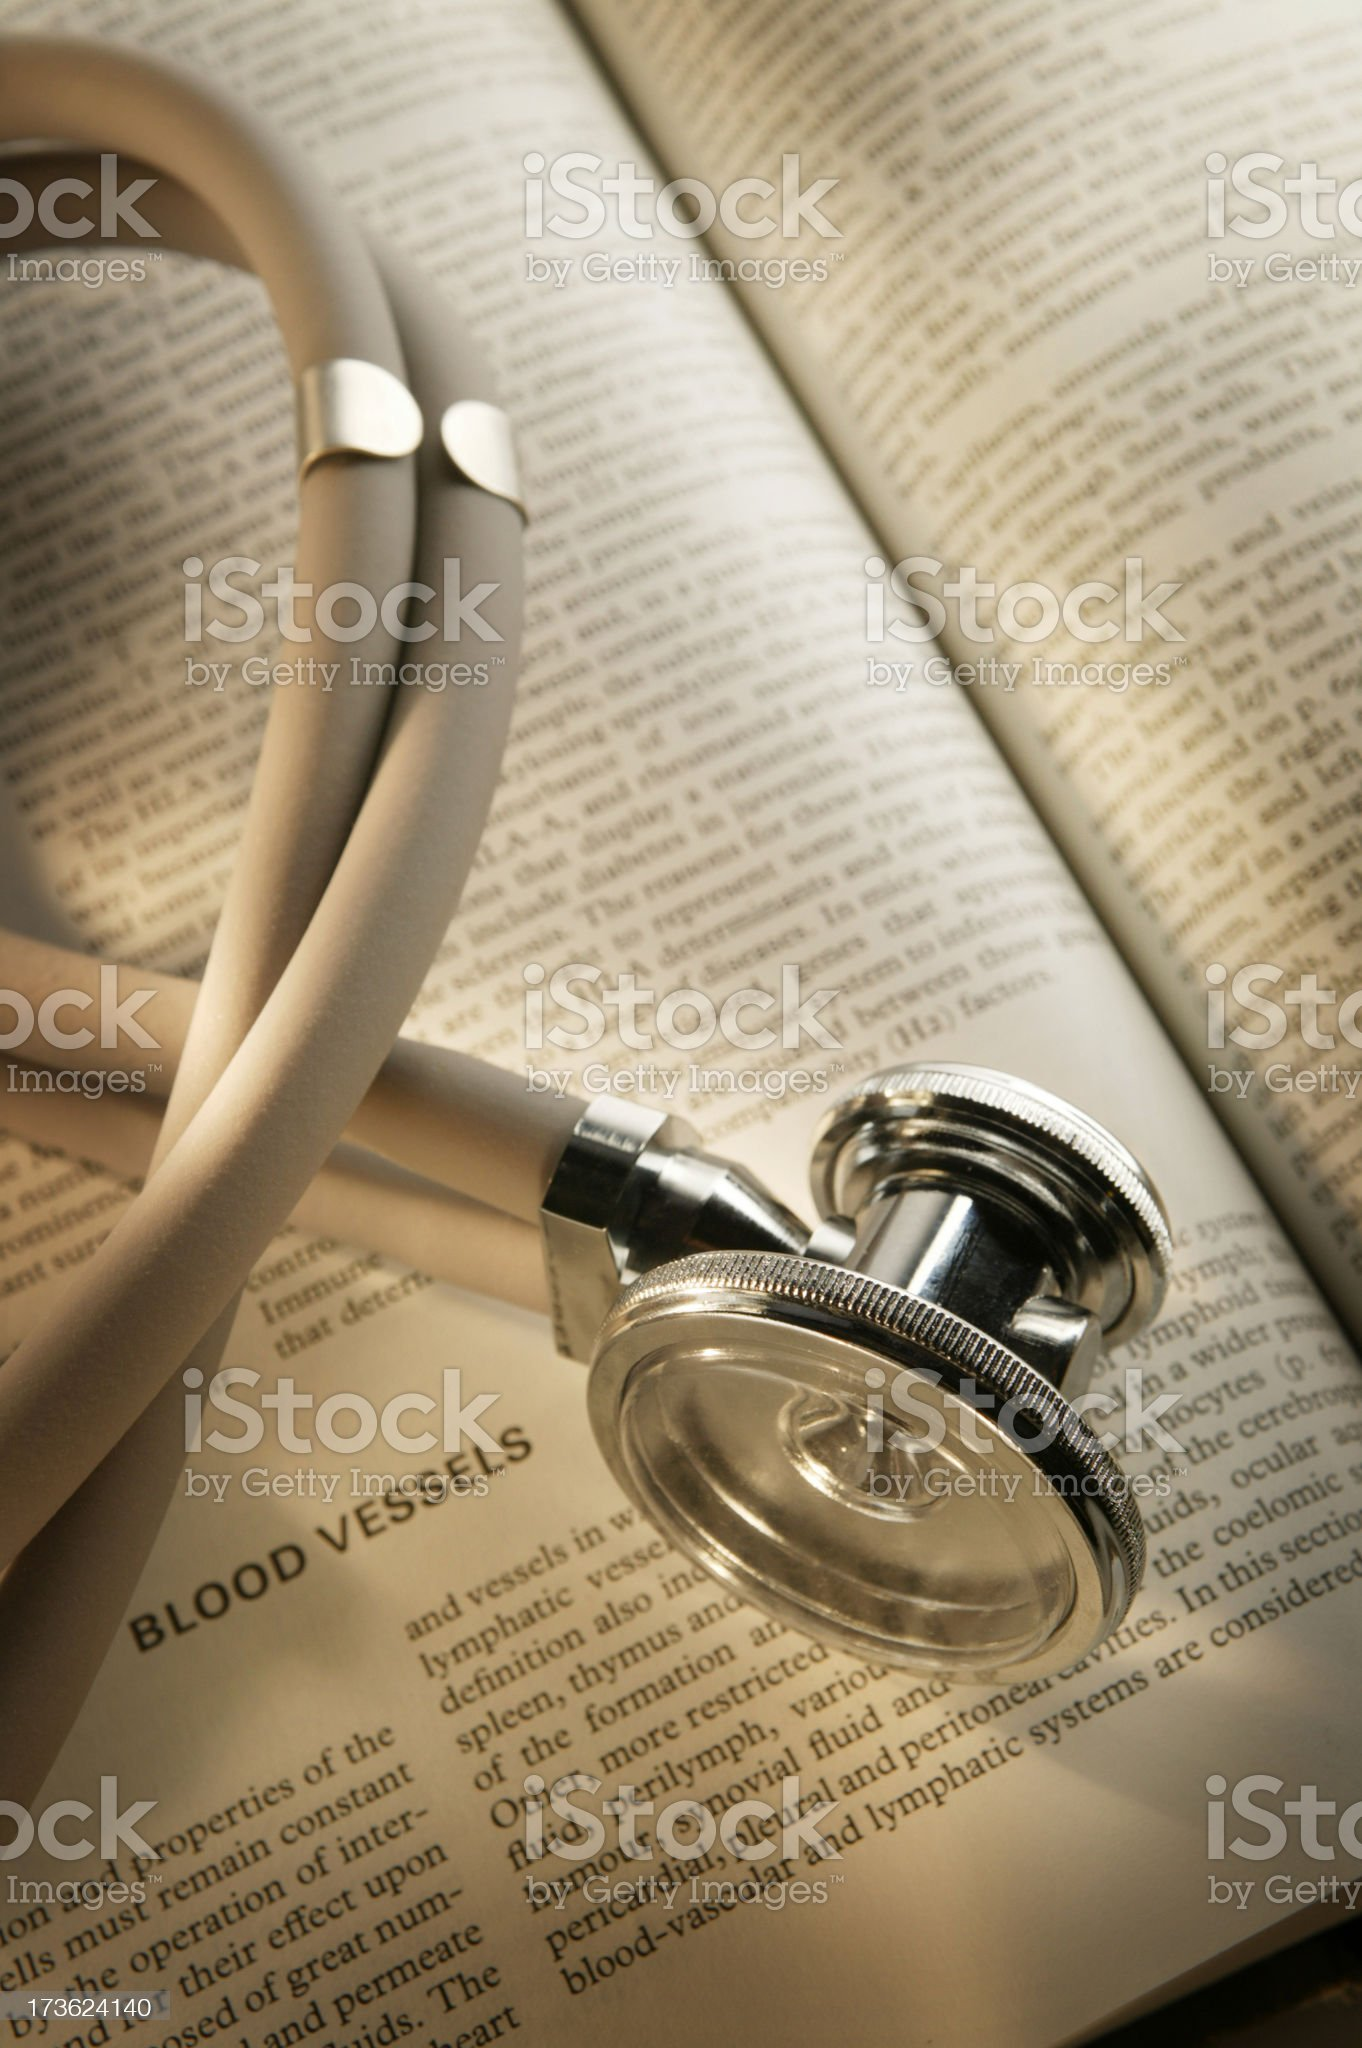 Stethoscope on Medical Textbook 3 royalty-free stock photo